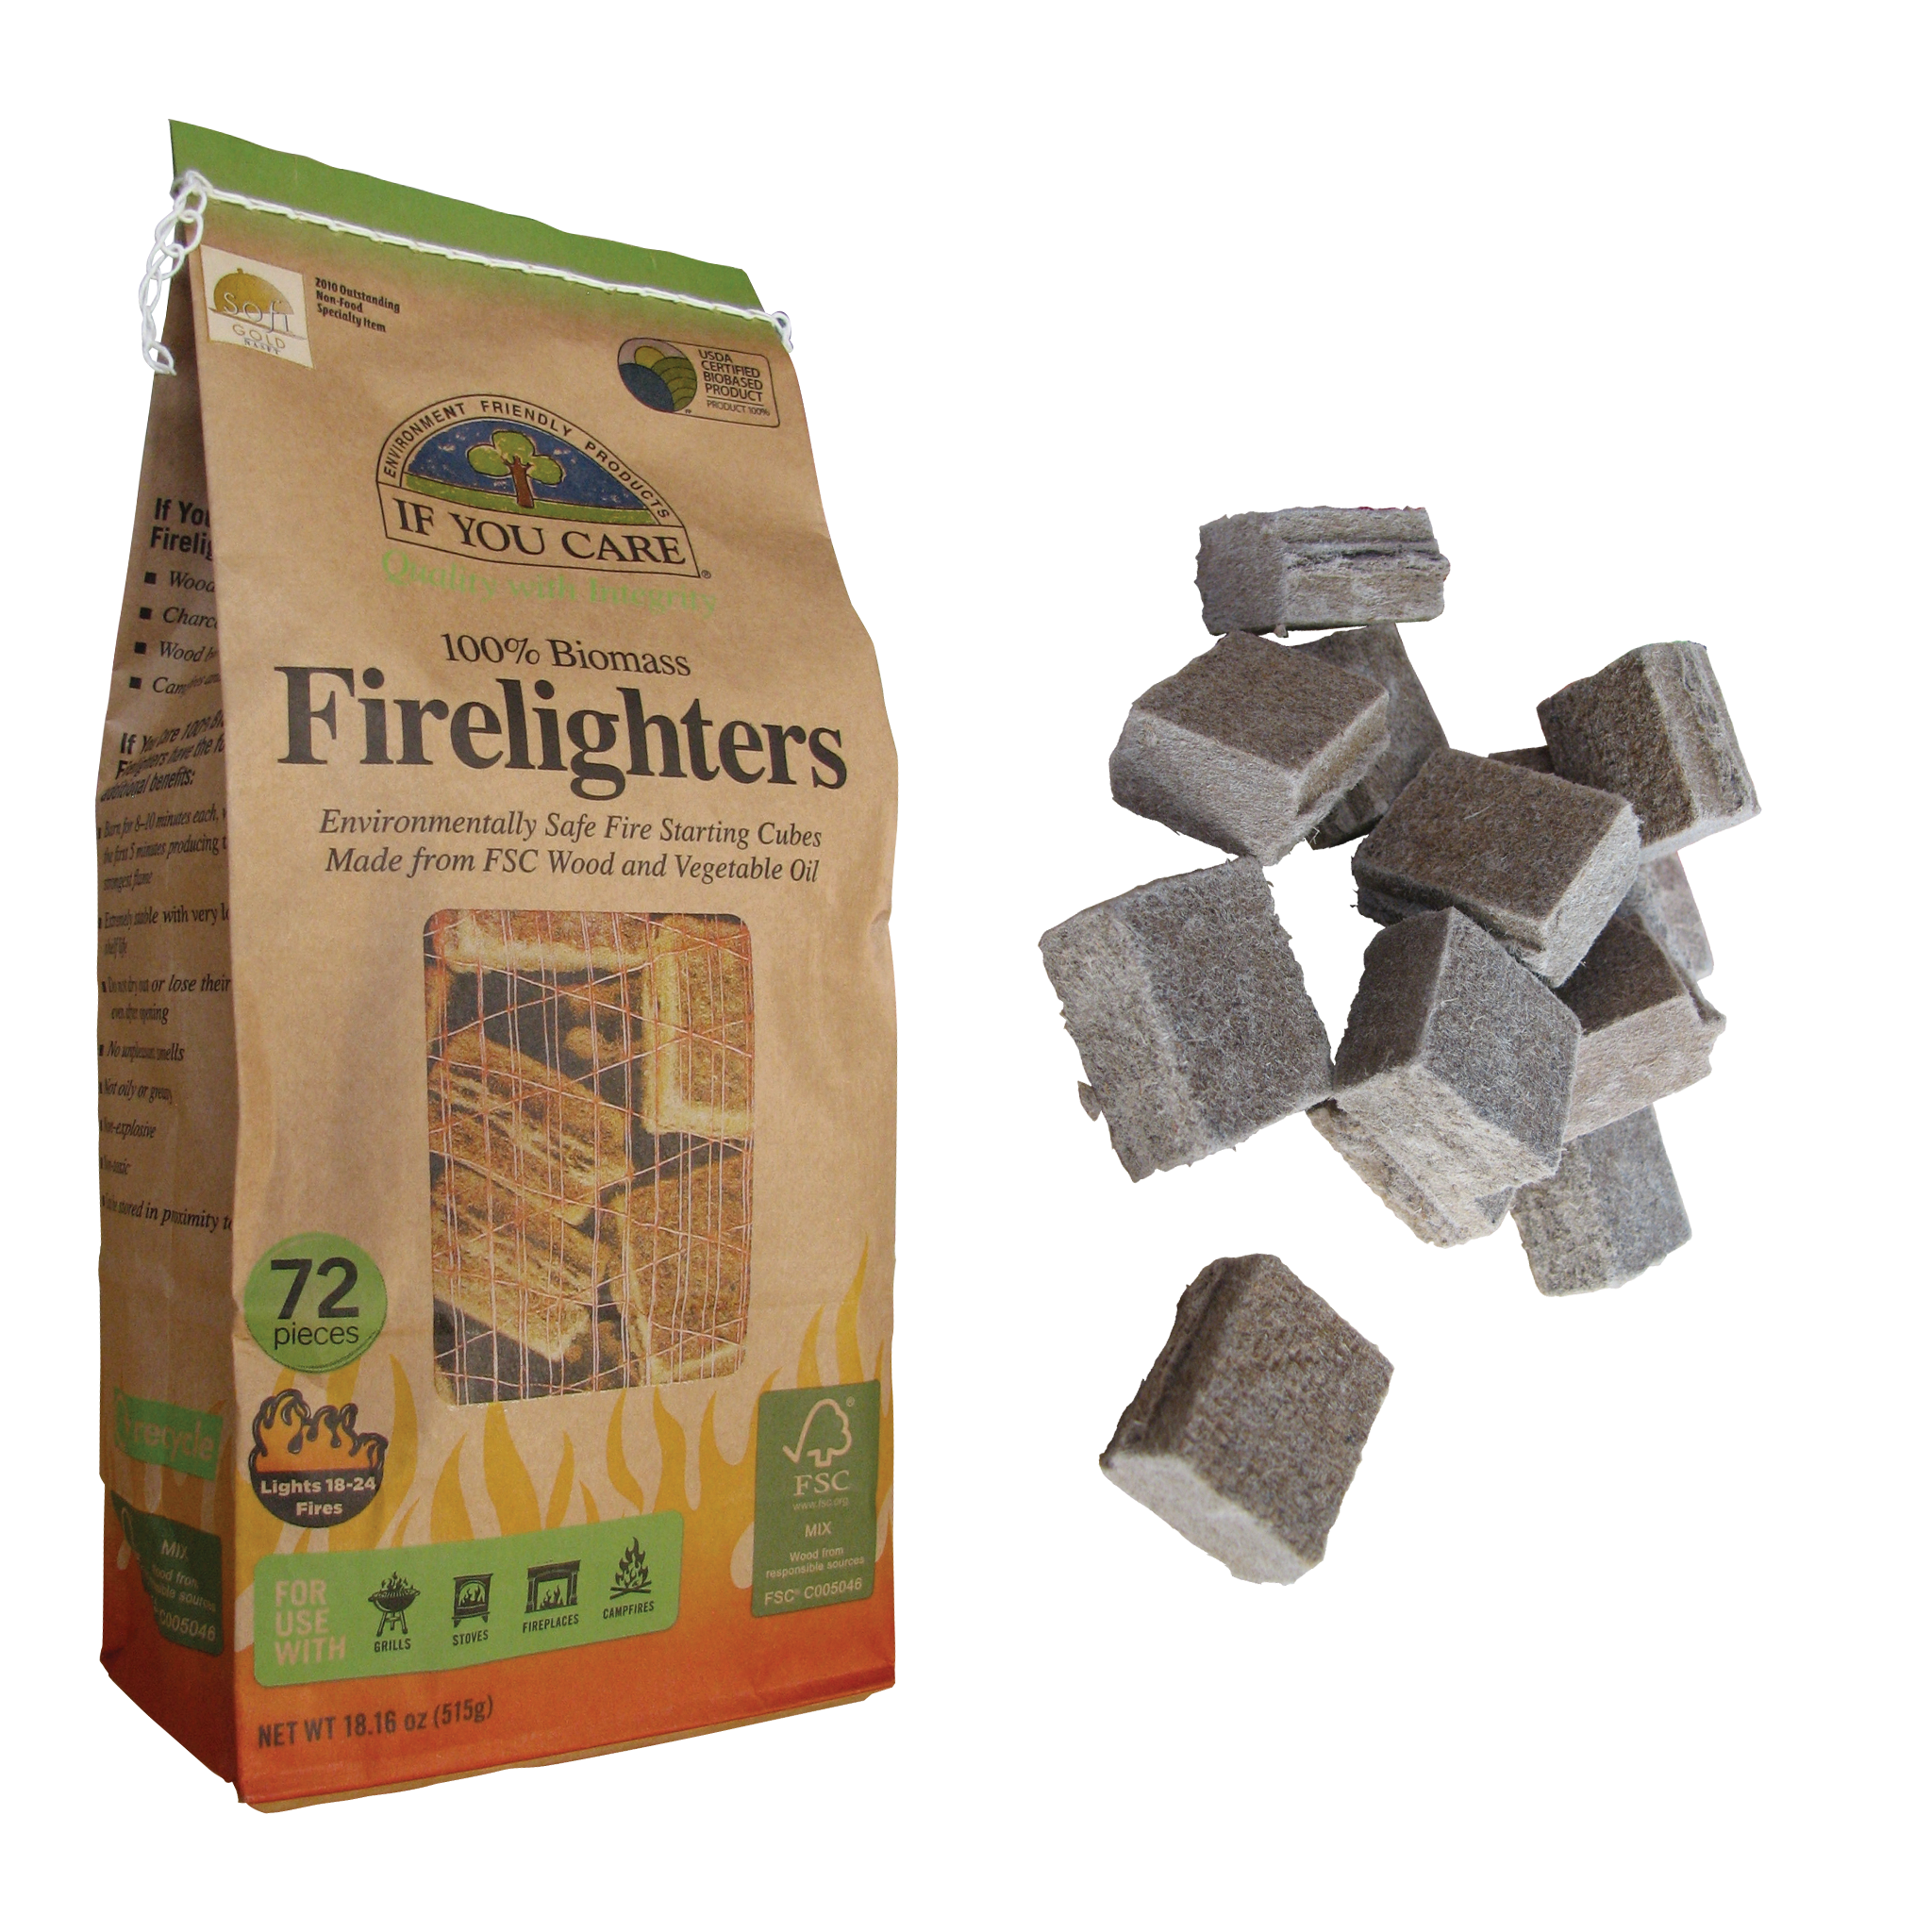 If You Care Non-toxic Wood and Vegetable Oil Firelighters 72